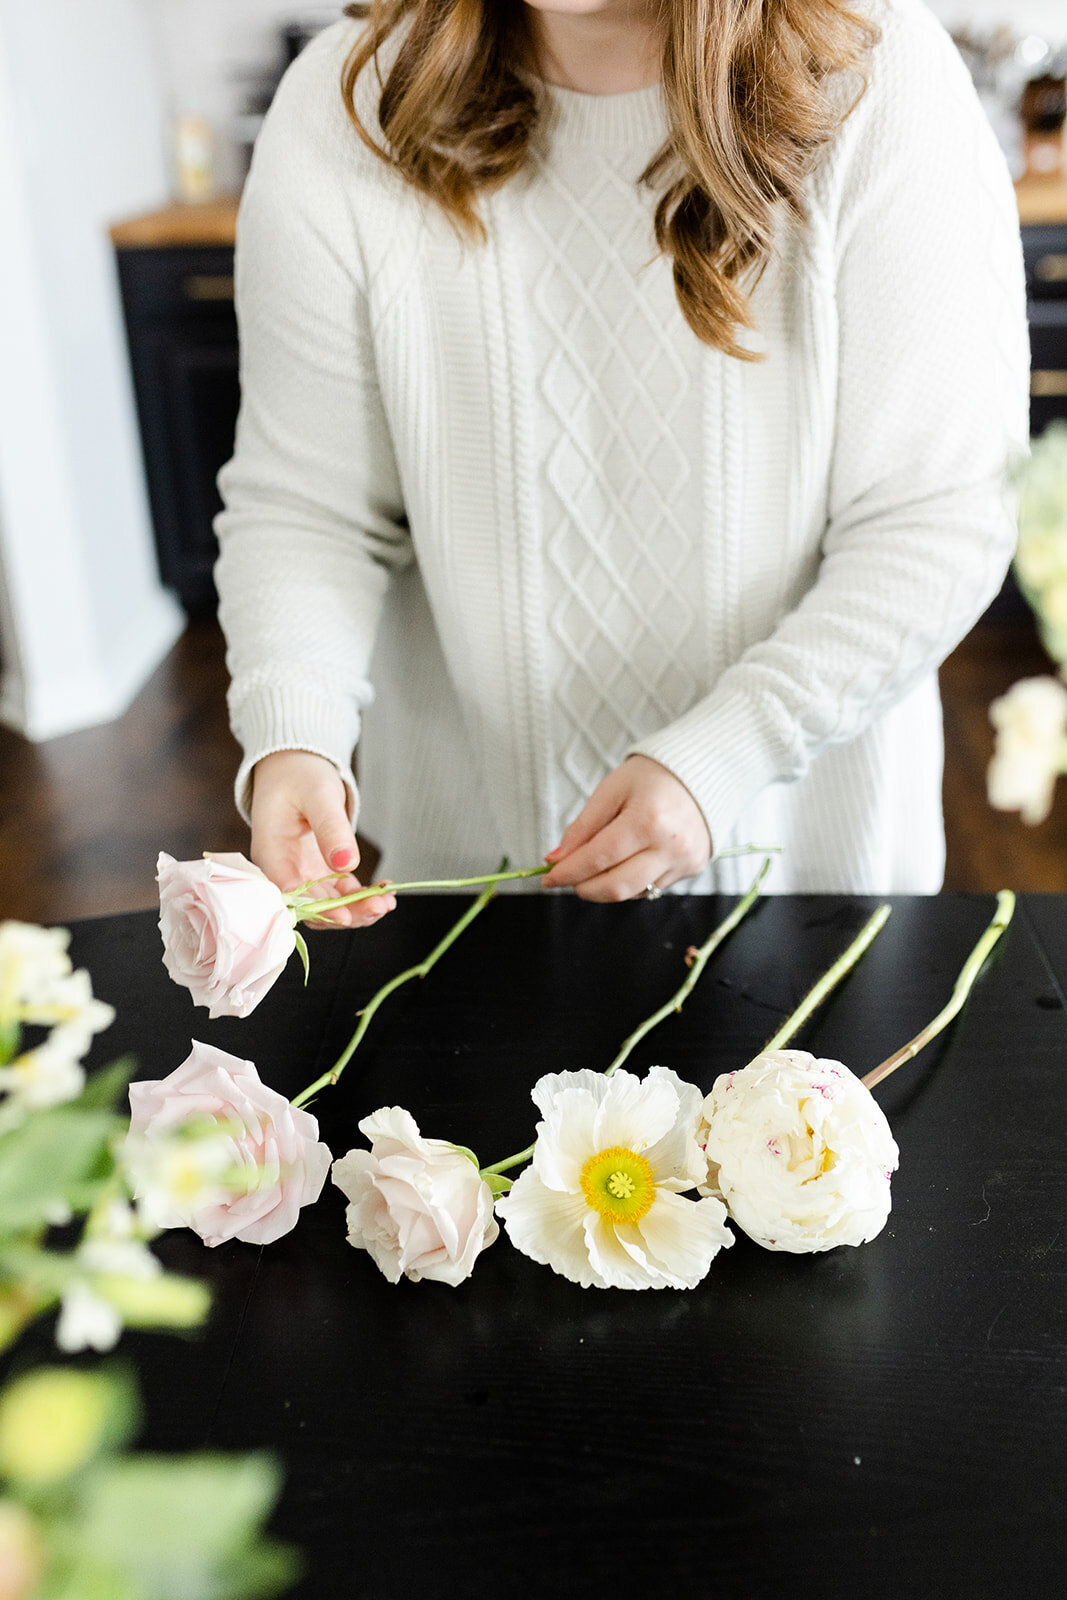 Hannah sorting floral stems for branding session